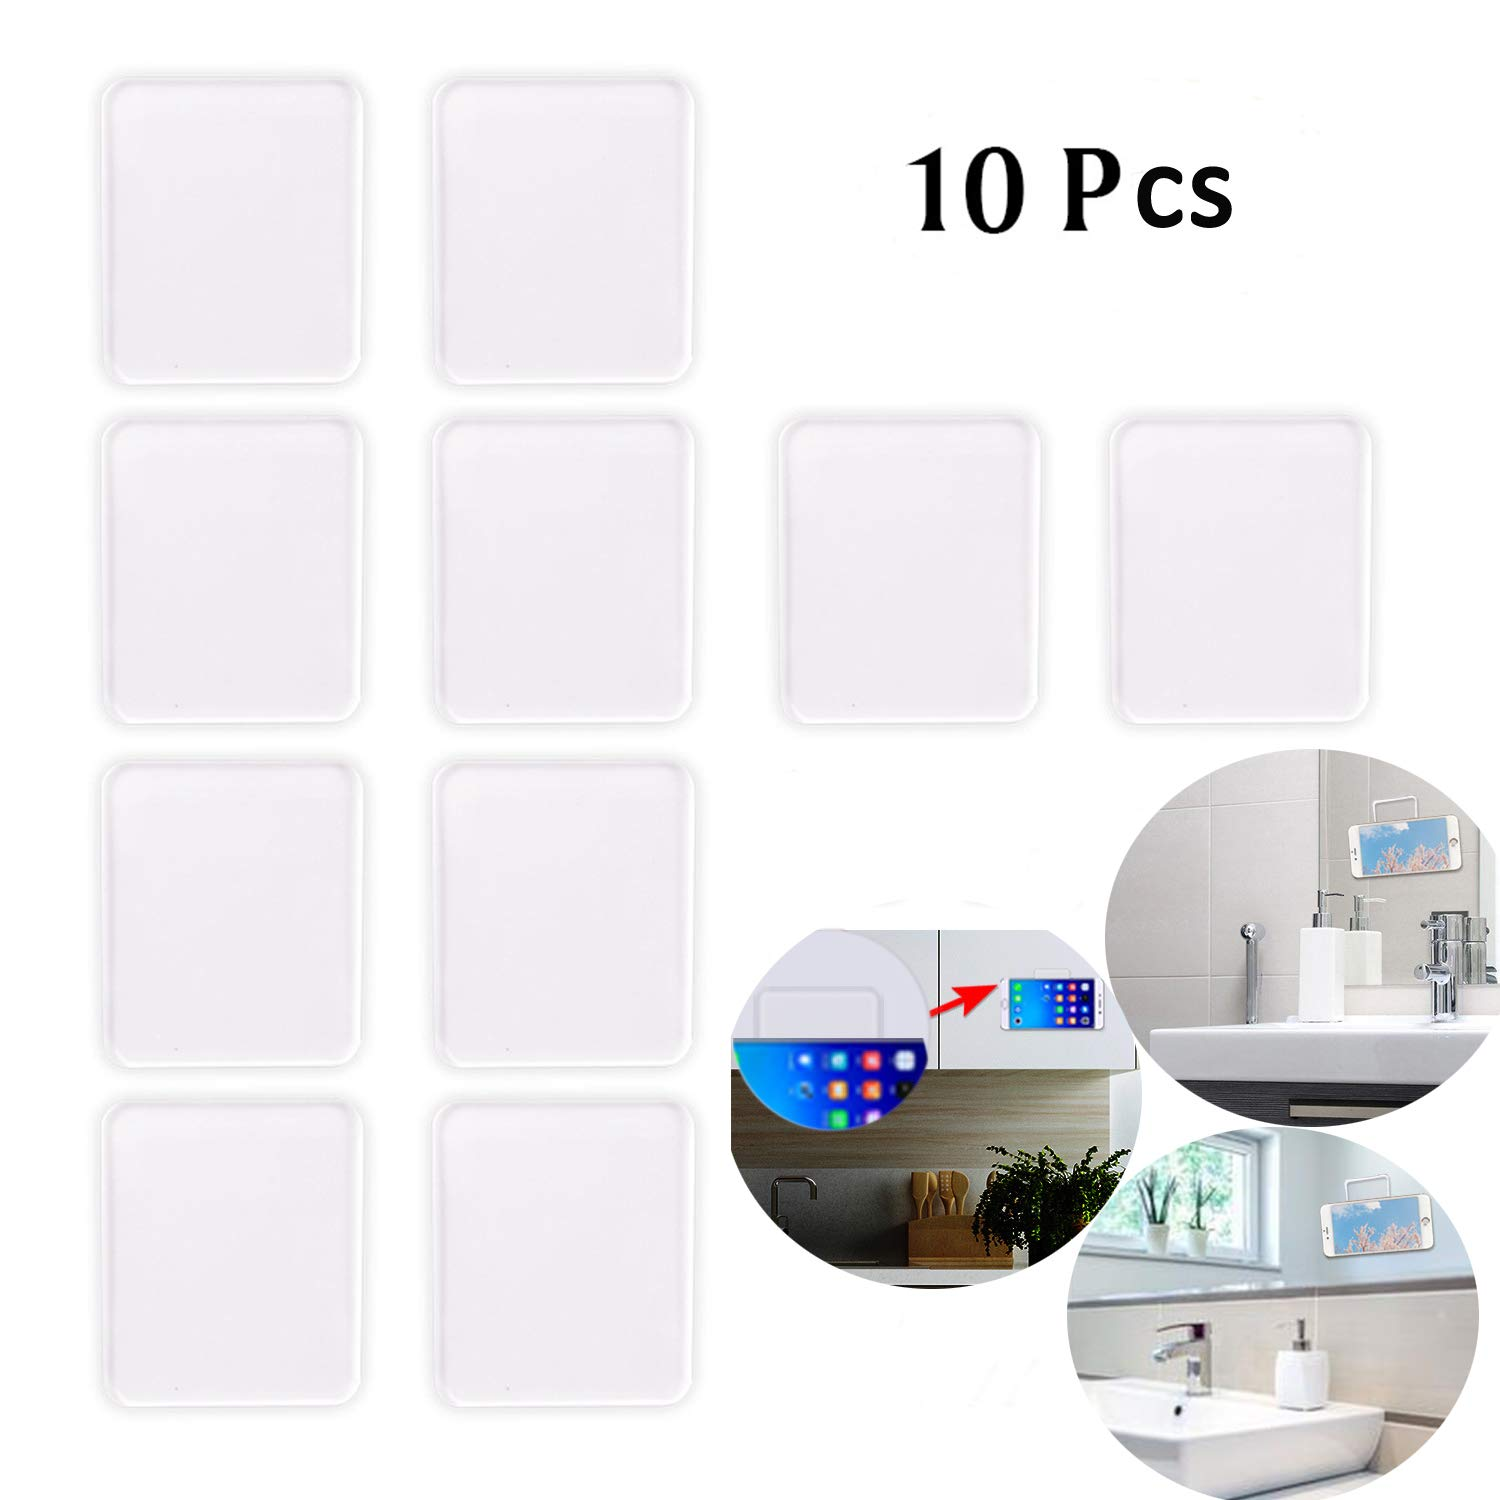 Anti Slip Pad 10 Pcs Silicone Adhesive Sticky Gel Pads-Syshan Reusable Removable Transparent Adhesive Washable Seamless Traceless Double-Sided Sticker Pad by SYSHAN